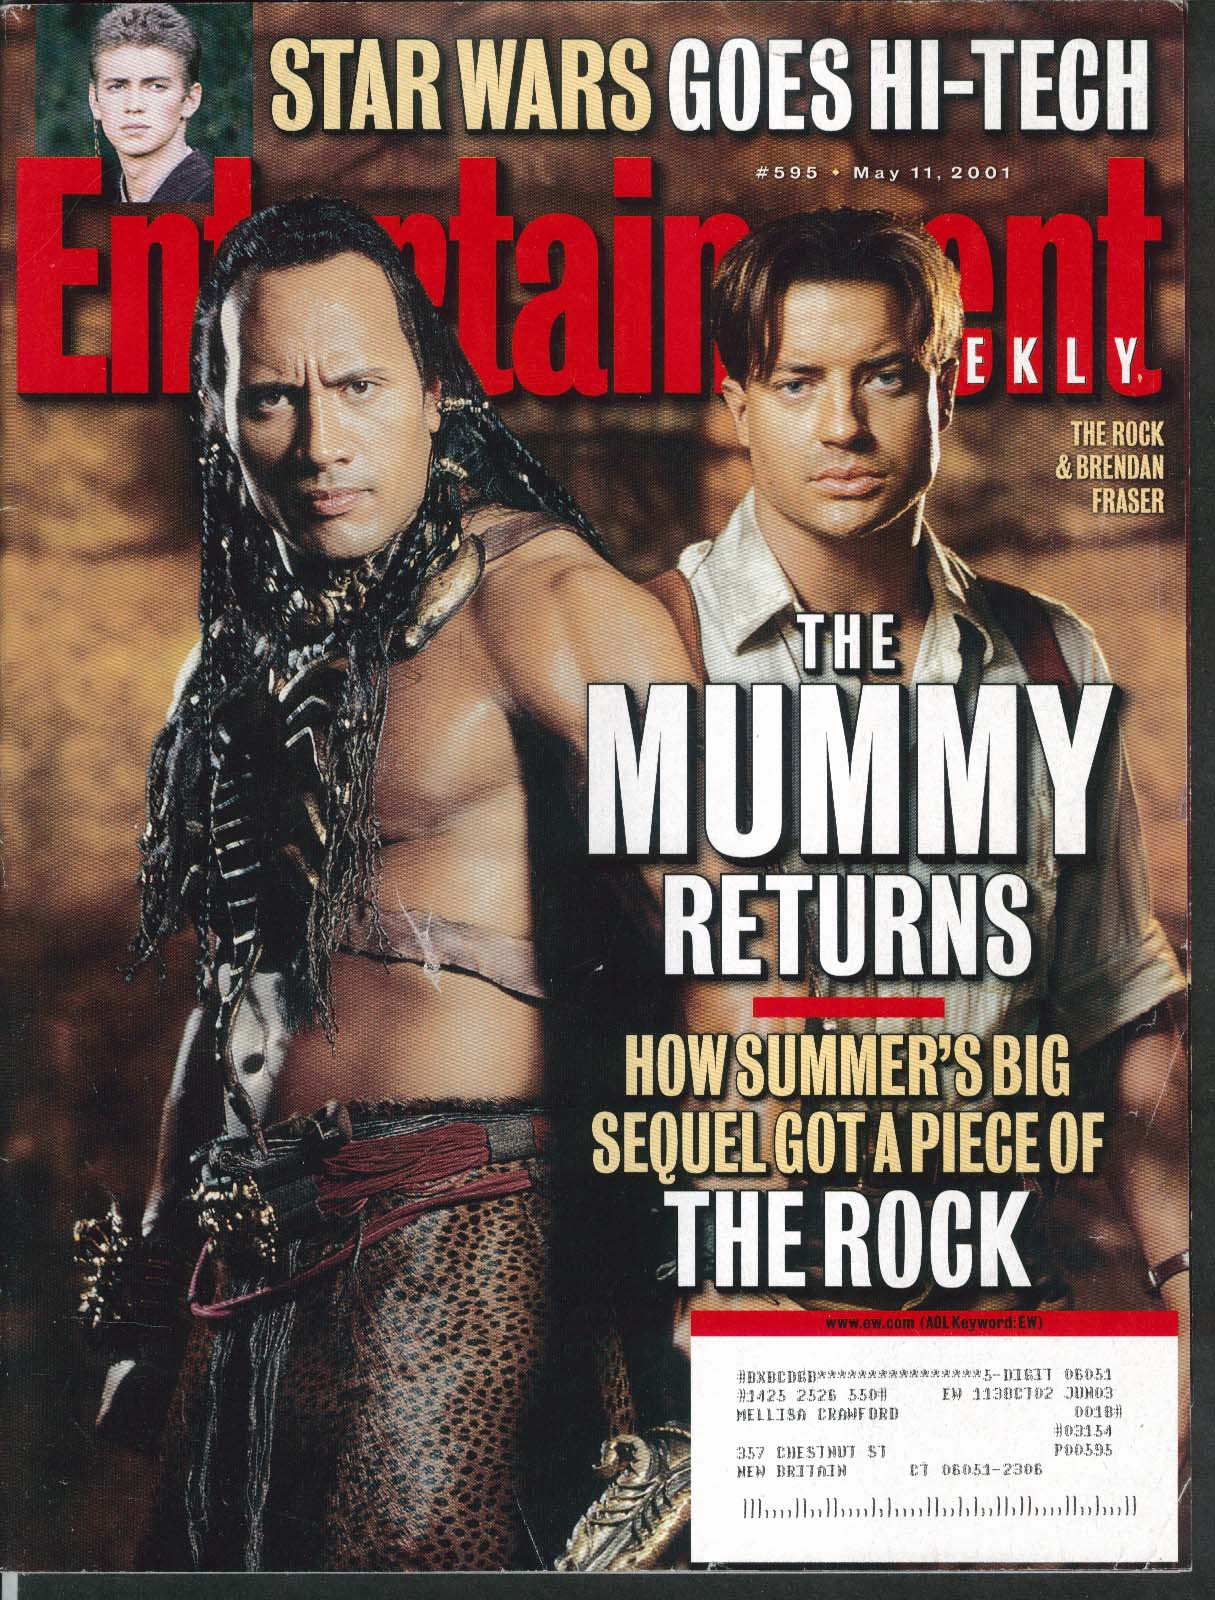 ENTERTAINMENT WEEKLY #595 Mummy Returns Rock Brendan Fraser Star Wars 5/11 2001